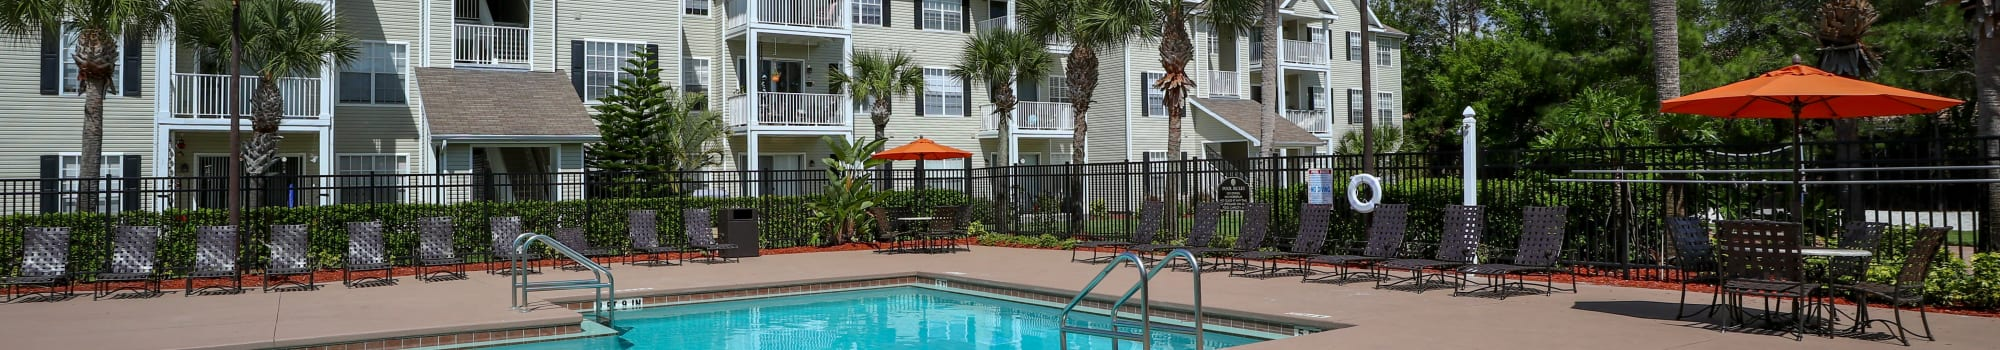 Apartments in New Port Richey